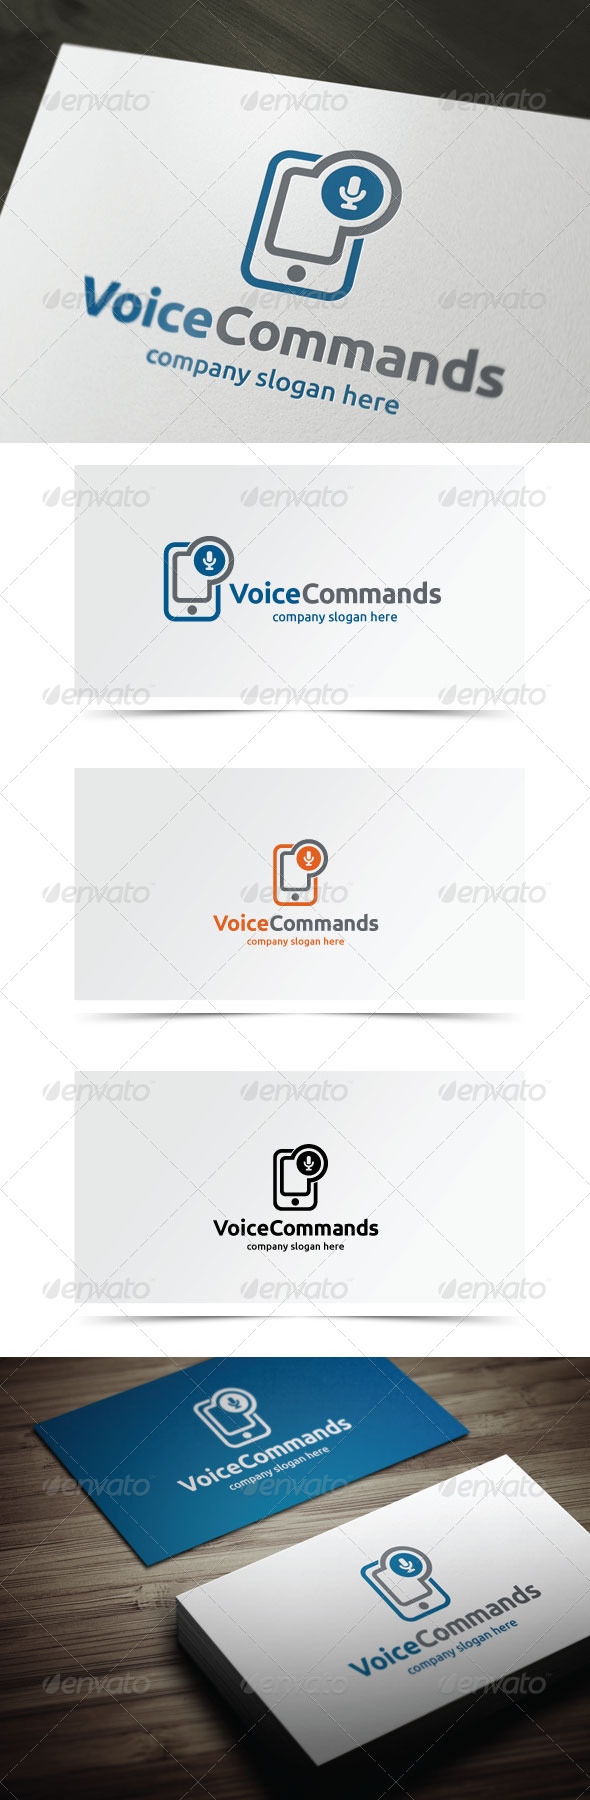 GraphicRiver Voice Commands 6124438